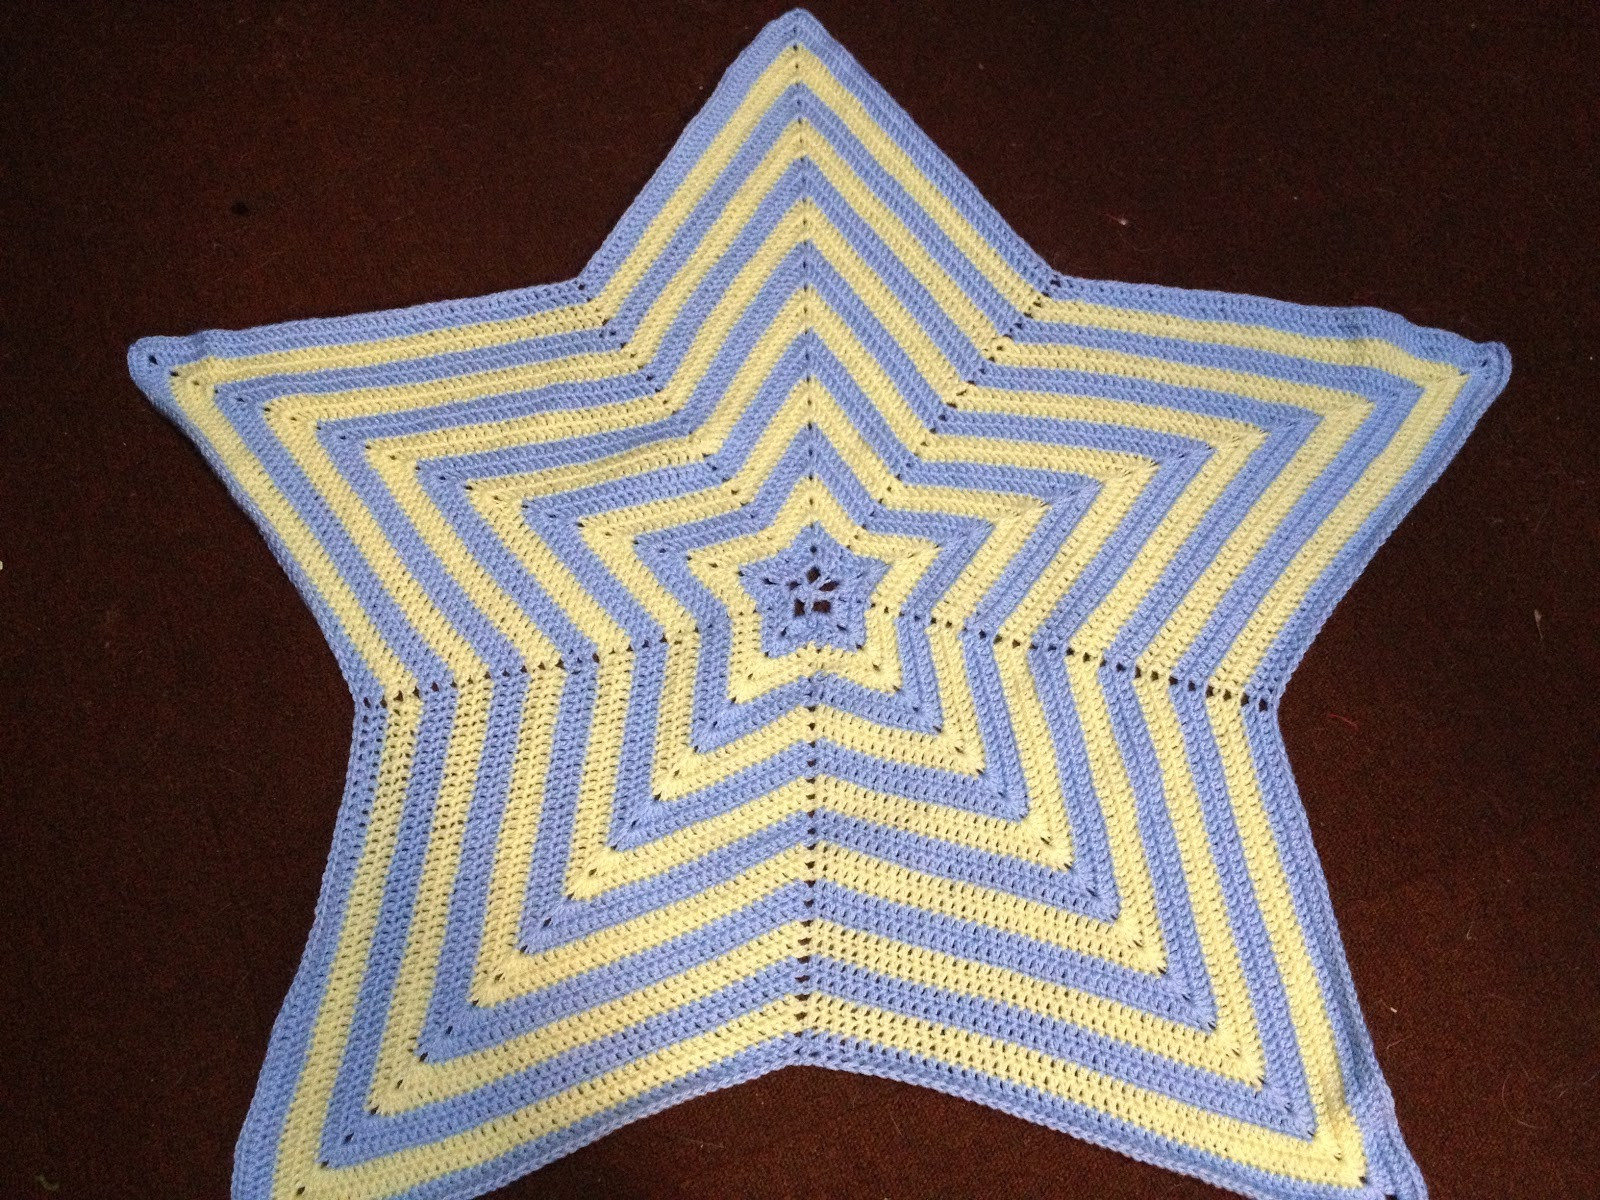 Star Blanket Crochet Pattern Best Of Cook S Arts & Crafts Shoppe Of Adorable 46 Pictures Star Blanket Crochet Pattern